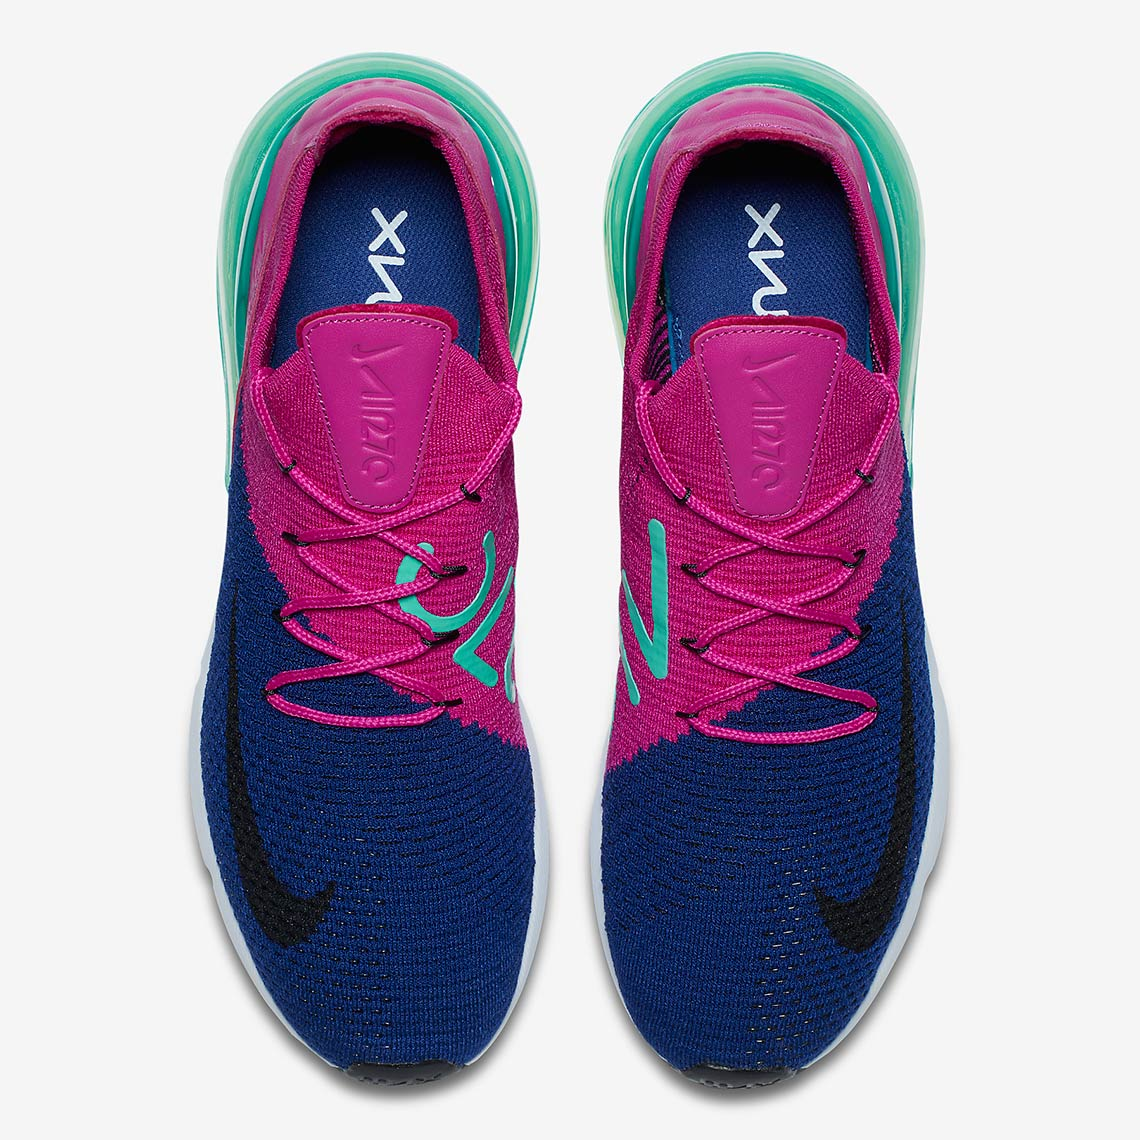 Buy Authentic Cheap Nike Air Max 270 Flyknit Royal Blue